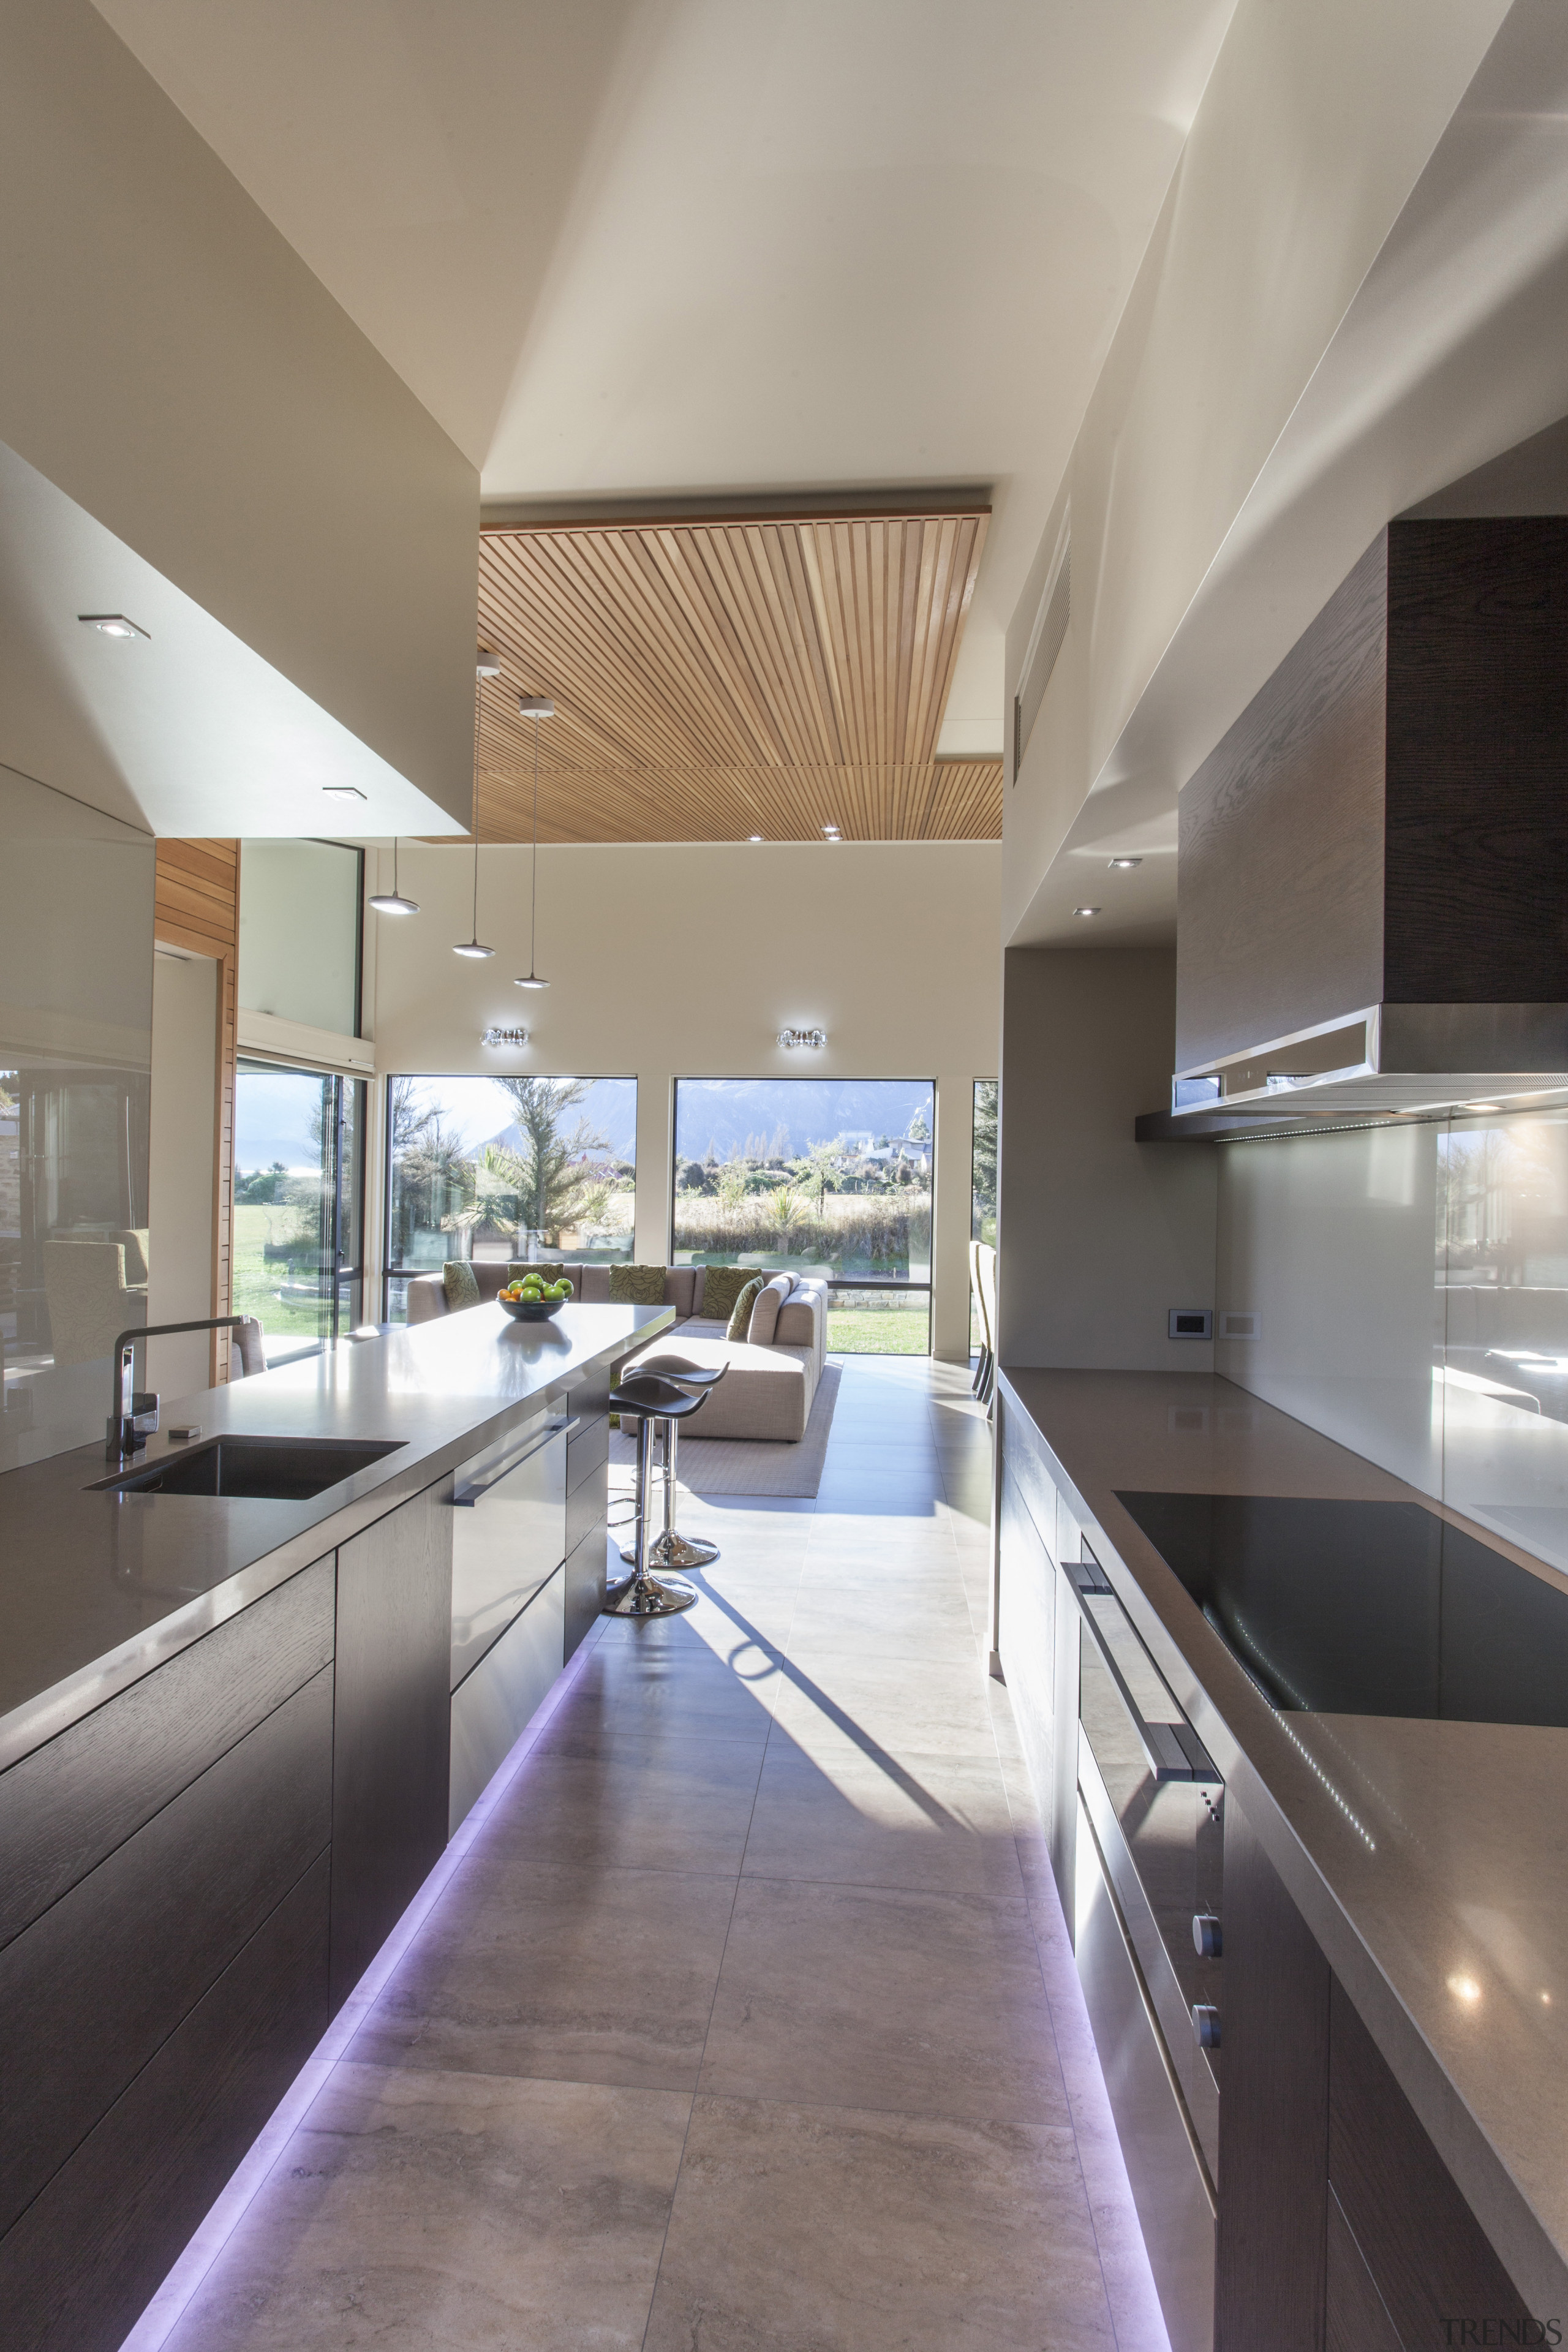 The kitchen of this country house includes a architecture, ceiling, countertop, daylighting, estate, floor, house, interior design, kitchen, real estate, gray